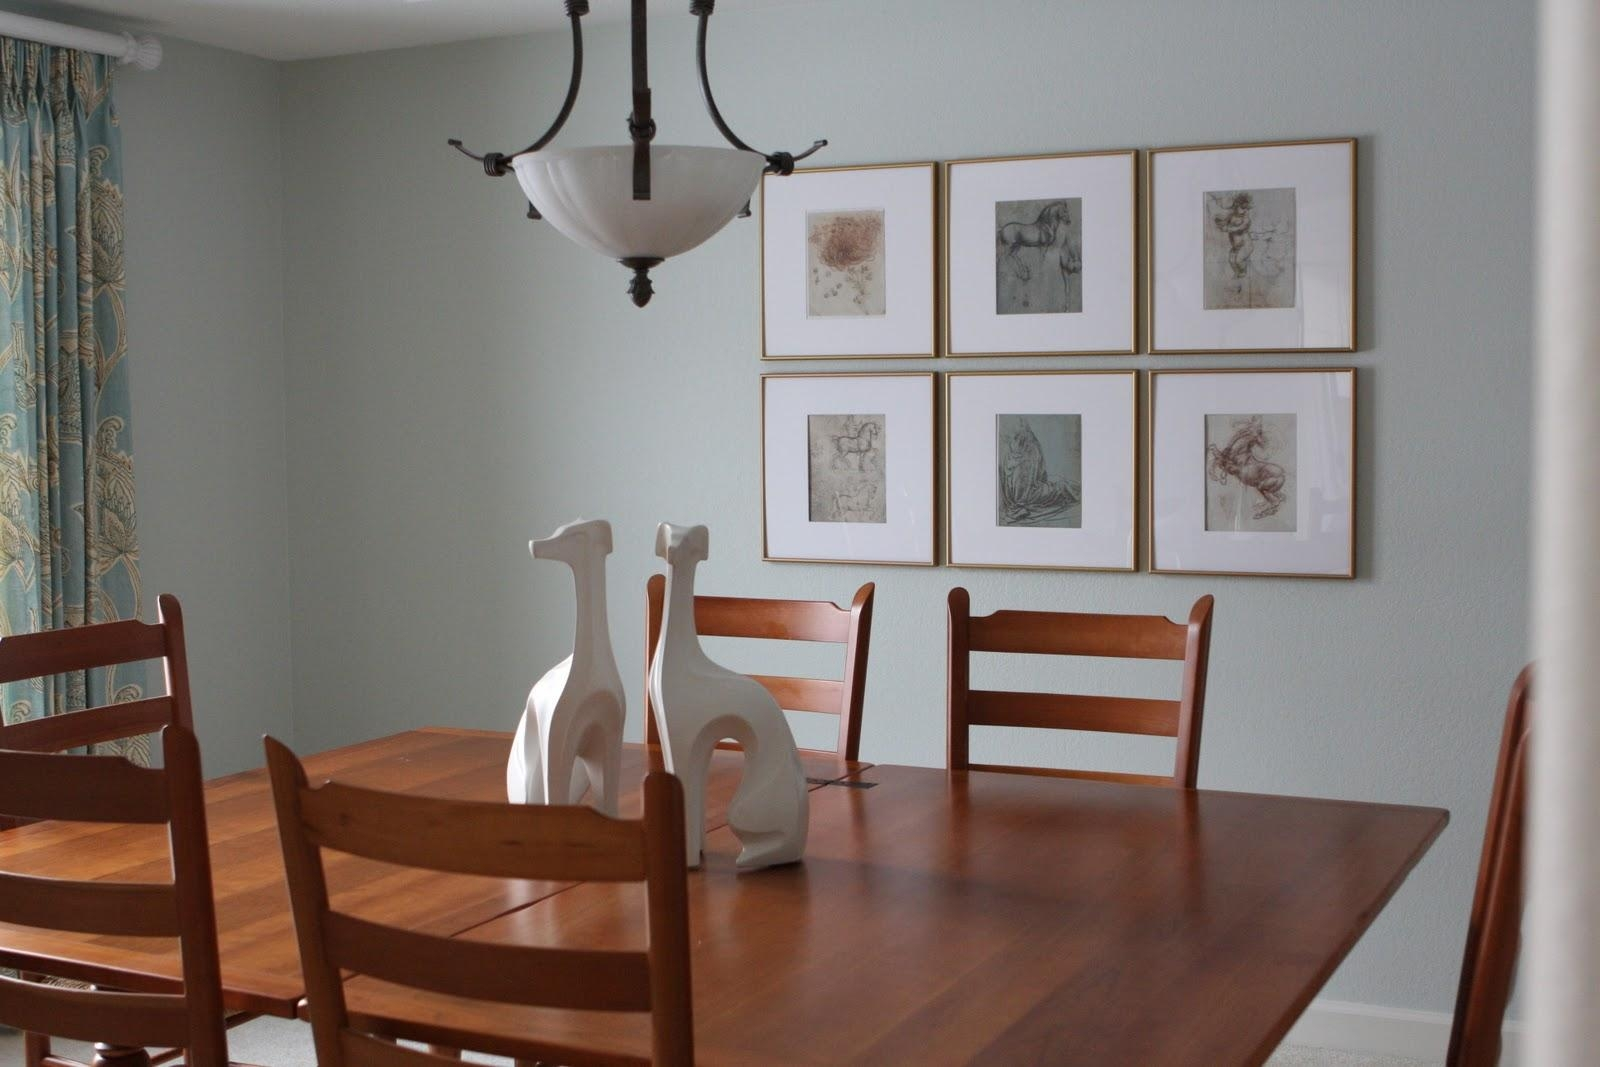 Wall Art Designs: Wall Art For Dining Room Contemporary Artwork With Regard To Canvas Wall Art For Dining Room (Image 18 of 20)